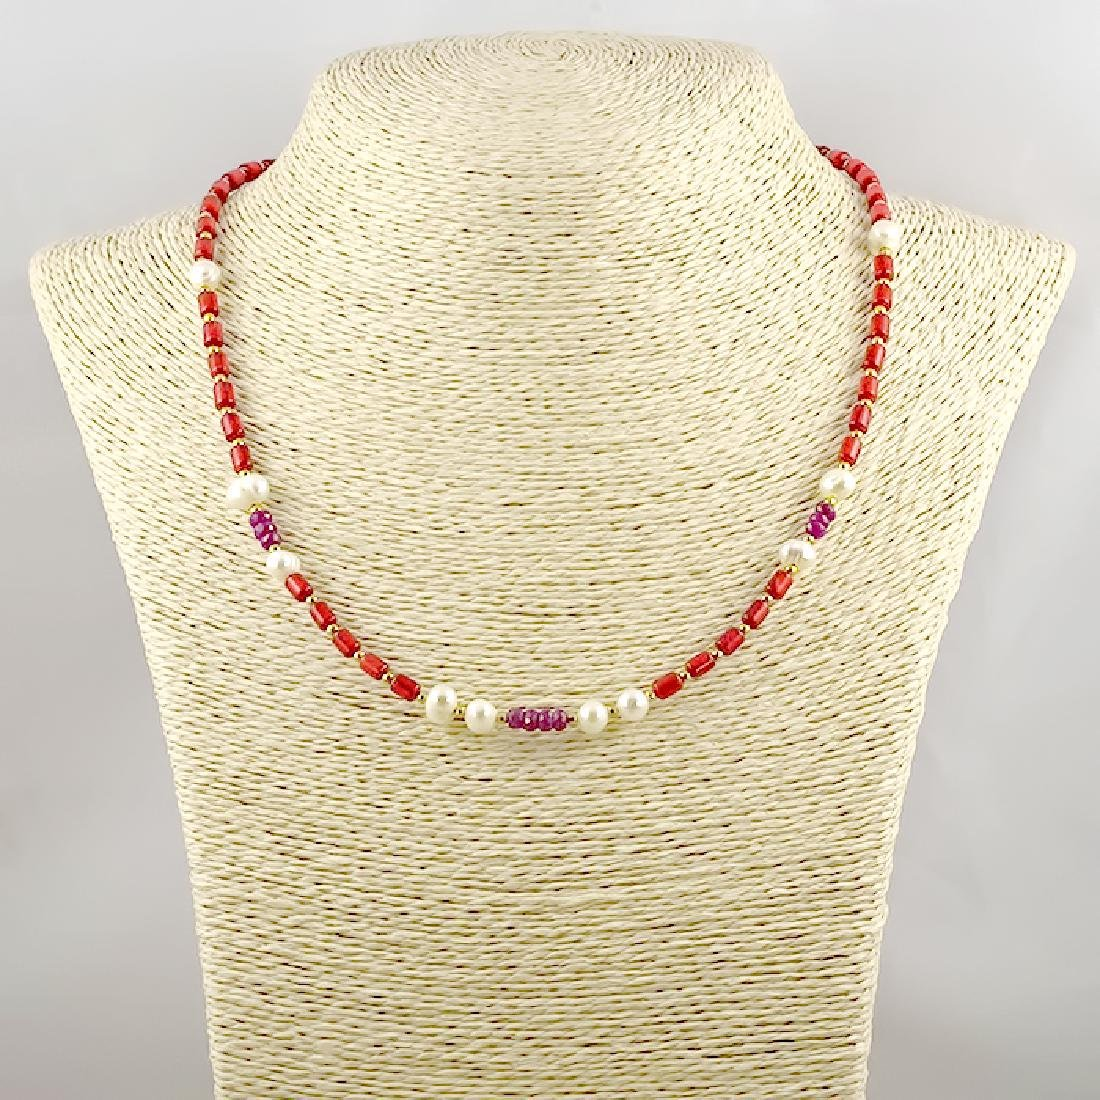 Coral Necklace with Pearls and Rubies 9.8ctw - 4